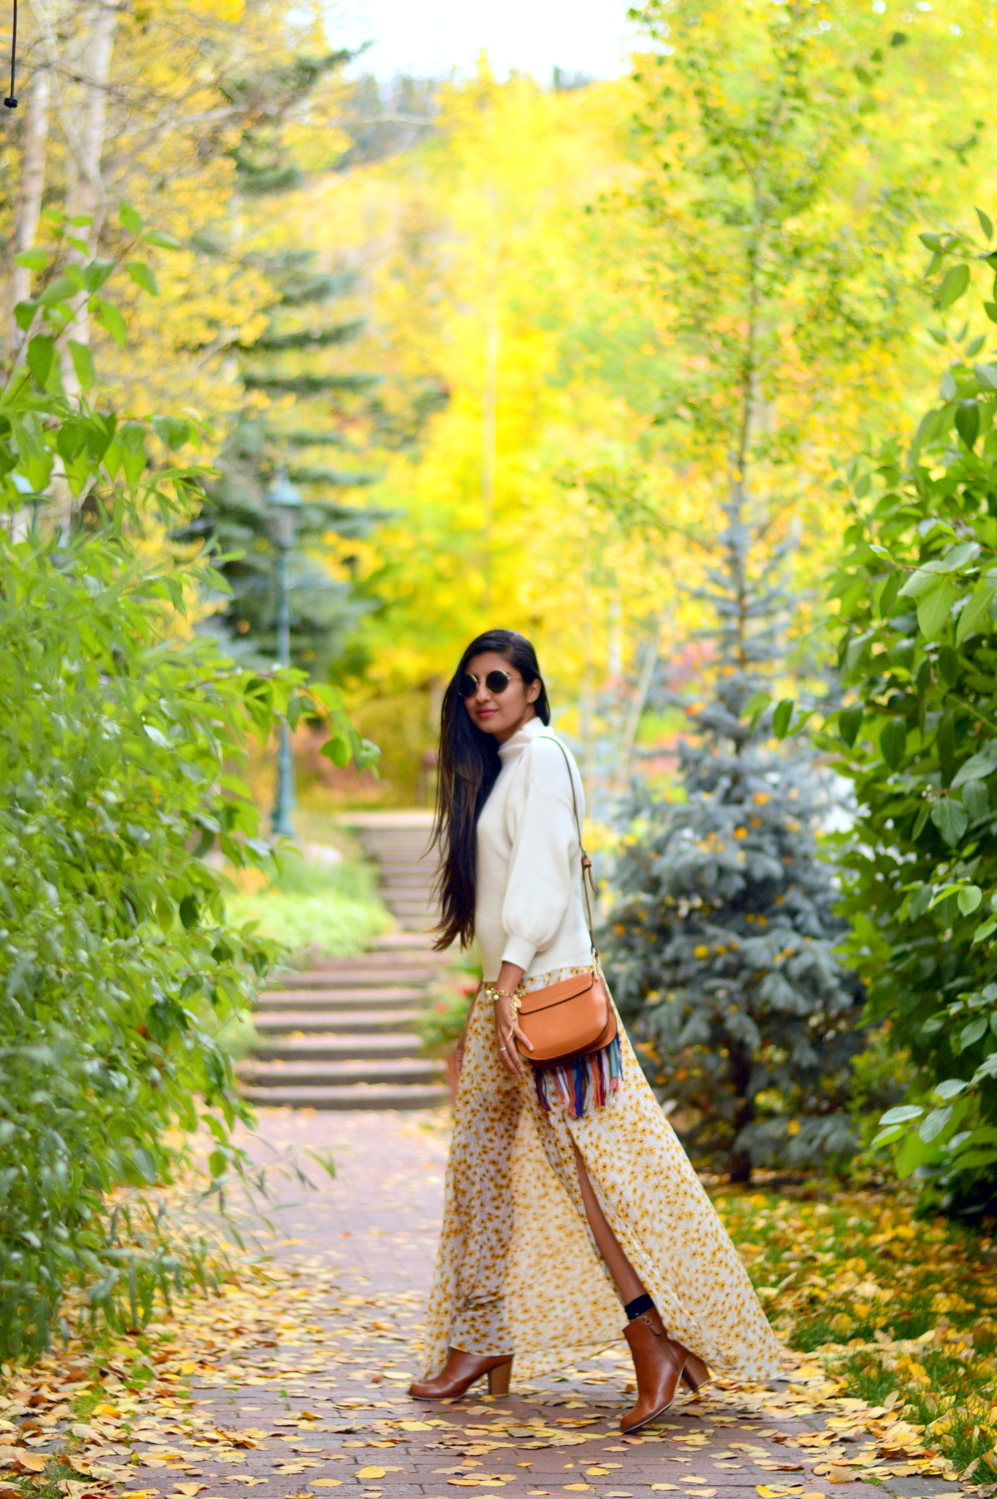 turtleneck-sweater-boho-floral-maxi-dress-travel-Vail-Colorado-style 1